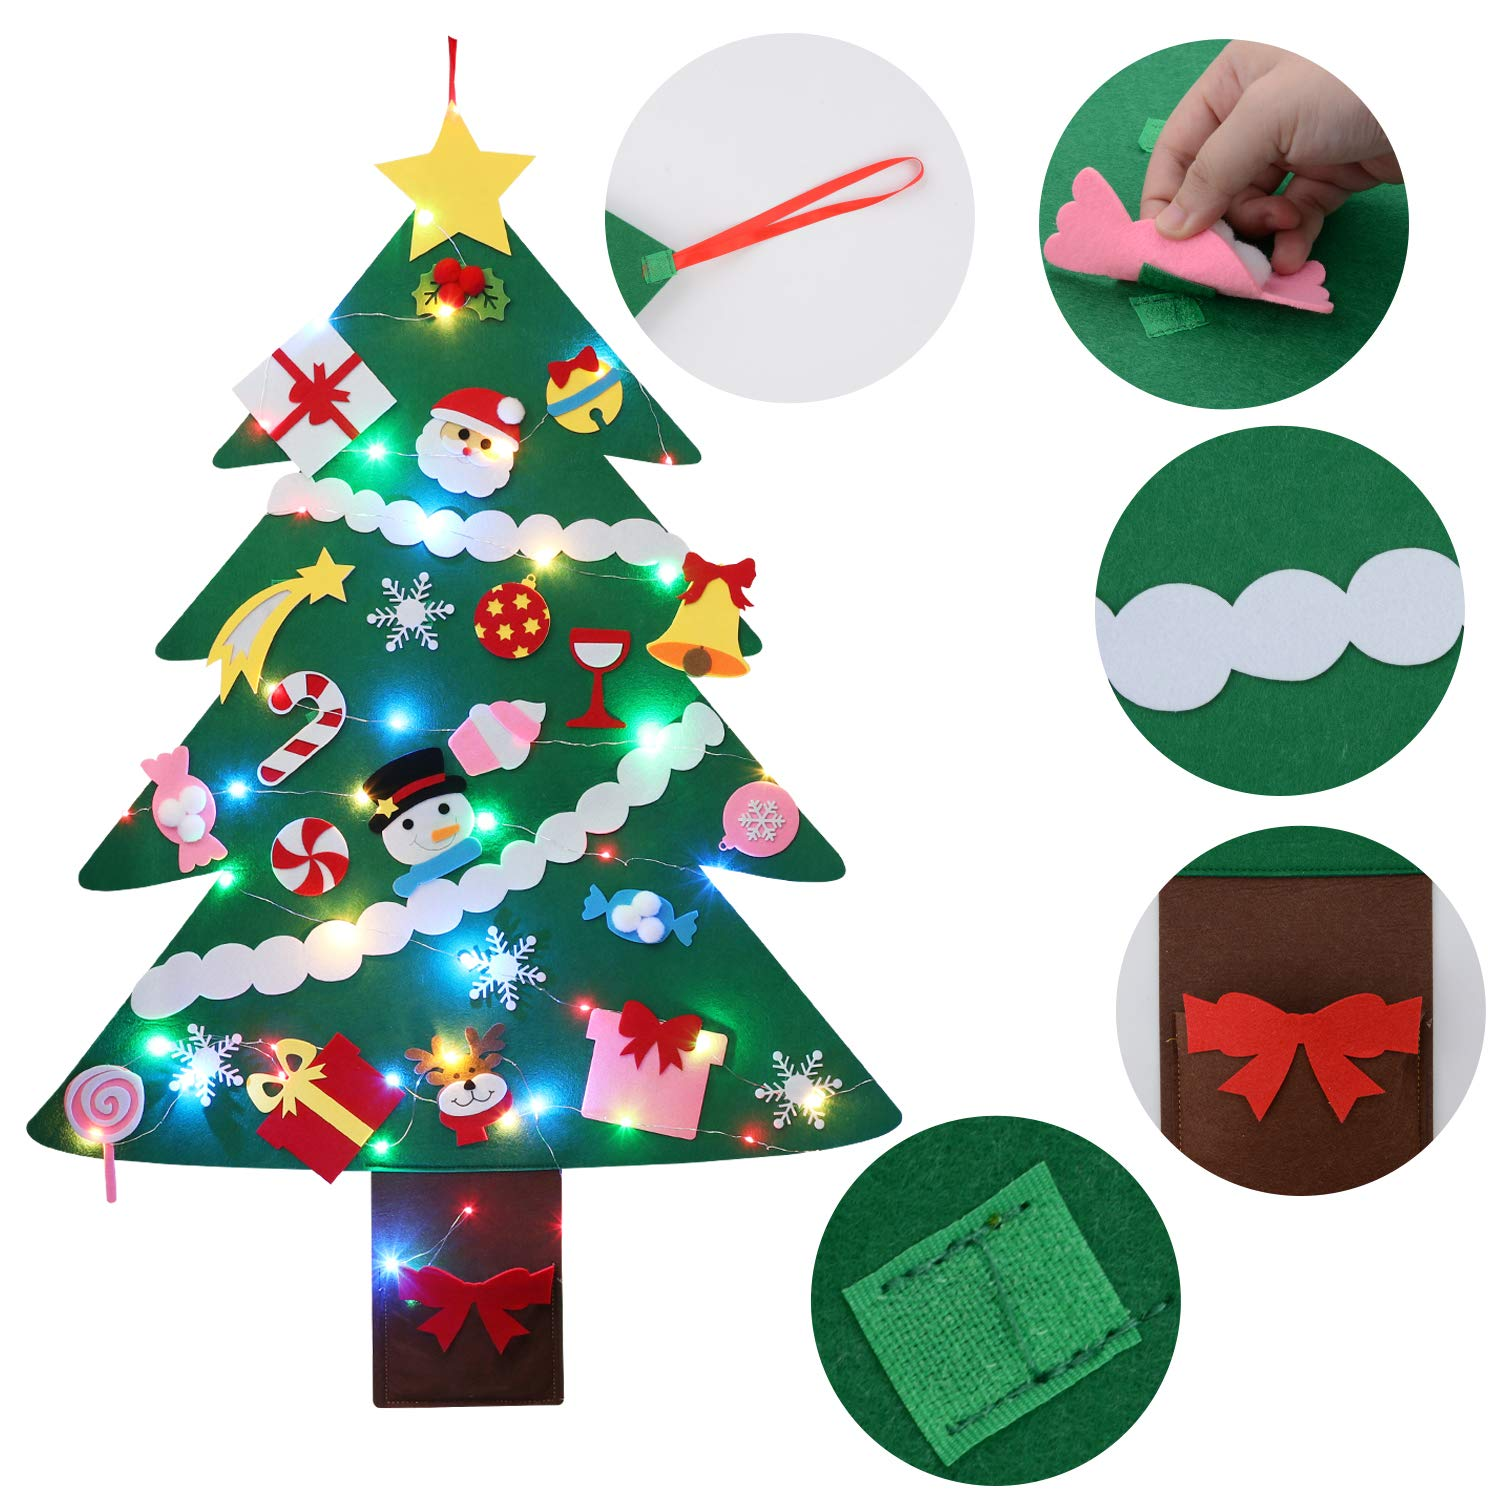 DIY Felt Christmas Tree, Fascigirl Fairy DIY Christmas Door Wall Hanging Decorations Christmas Tree with 16.4ft Colorful LED String Light , 28 Ornaments and 1 Red Gift Bag Xmas Gifts for Kids